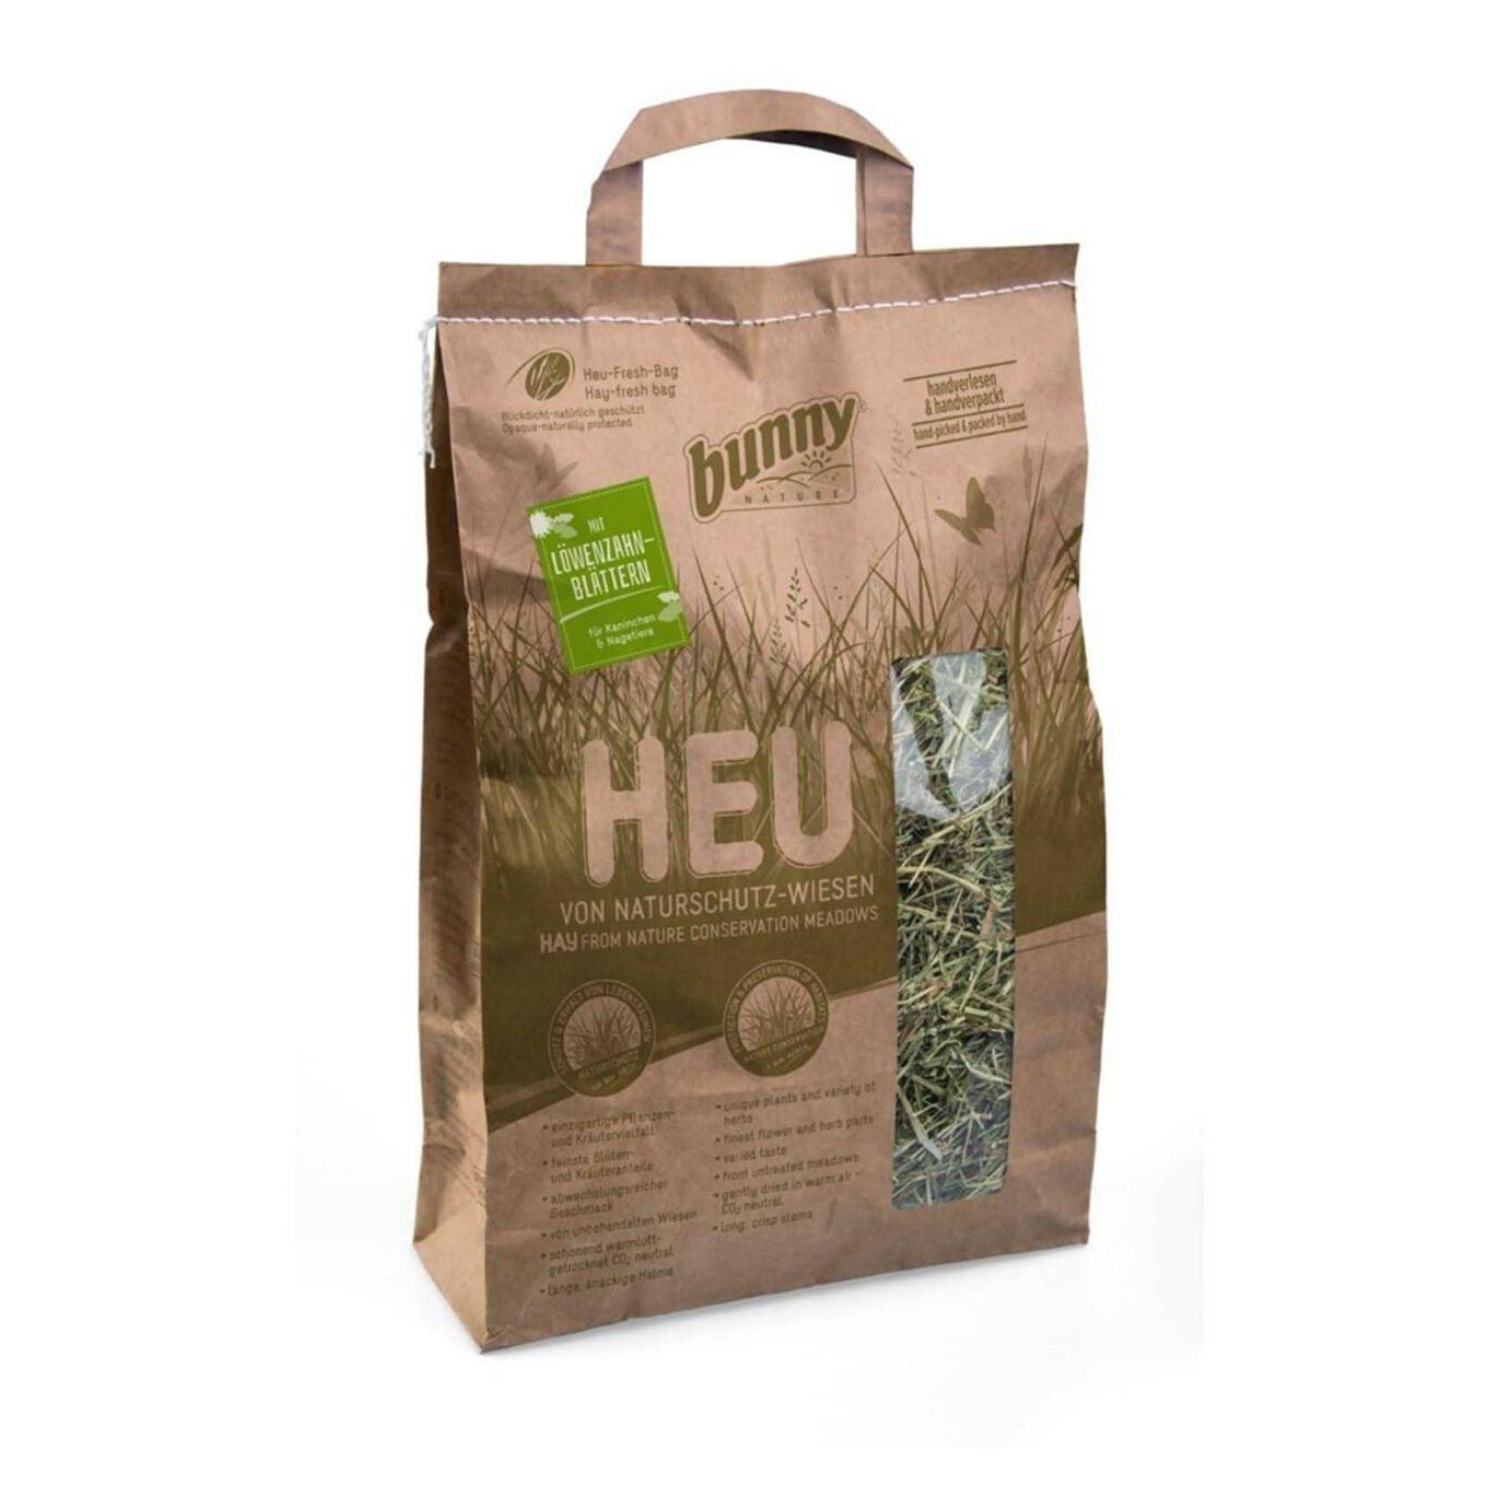 Bunny Nature Hay from Nature Conservation Meadows with Dandelion Leaves - 250g